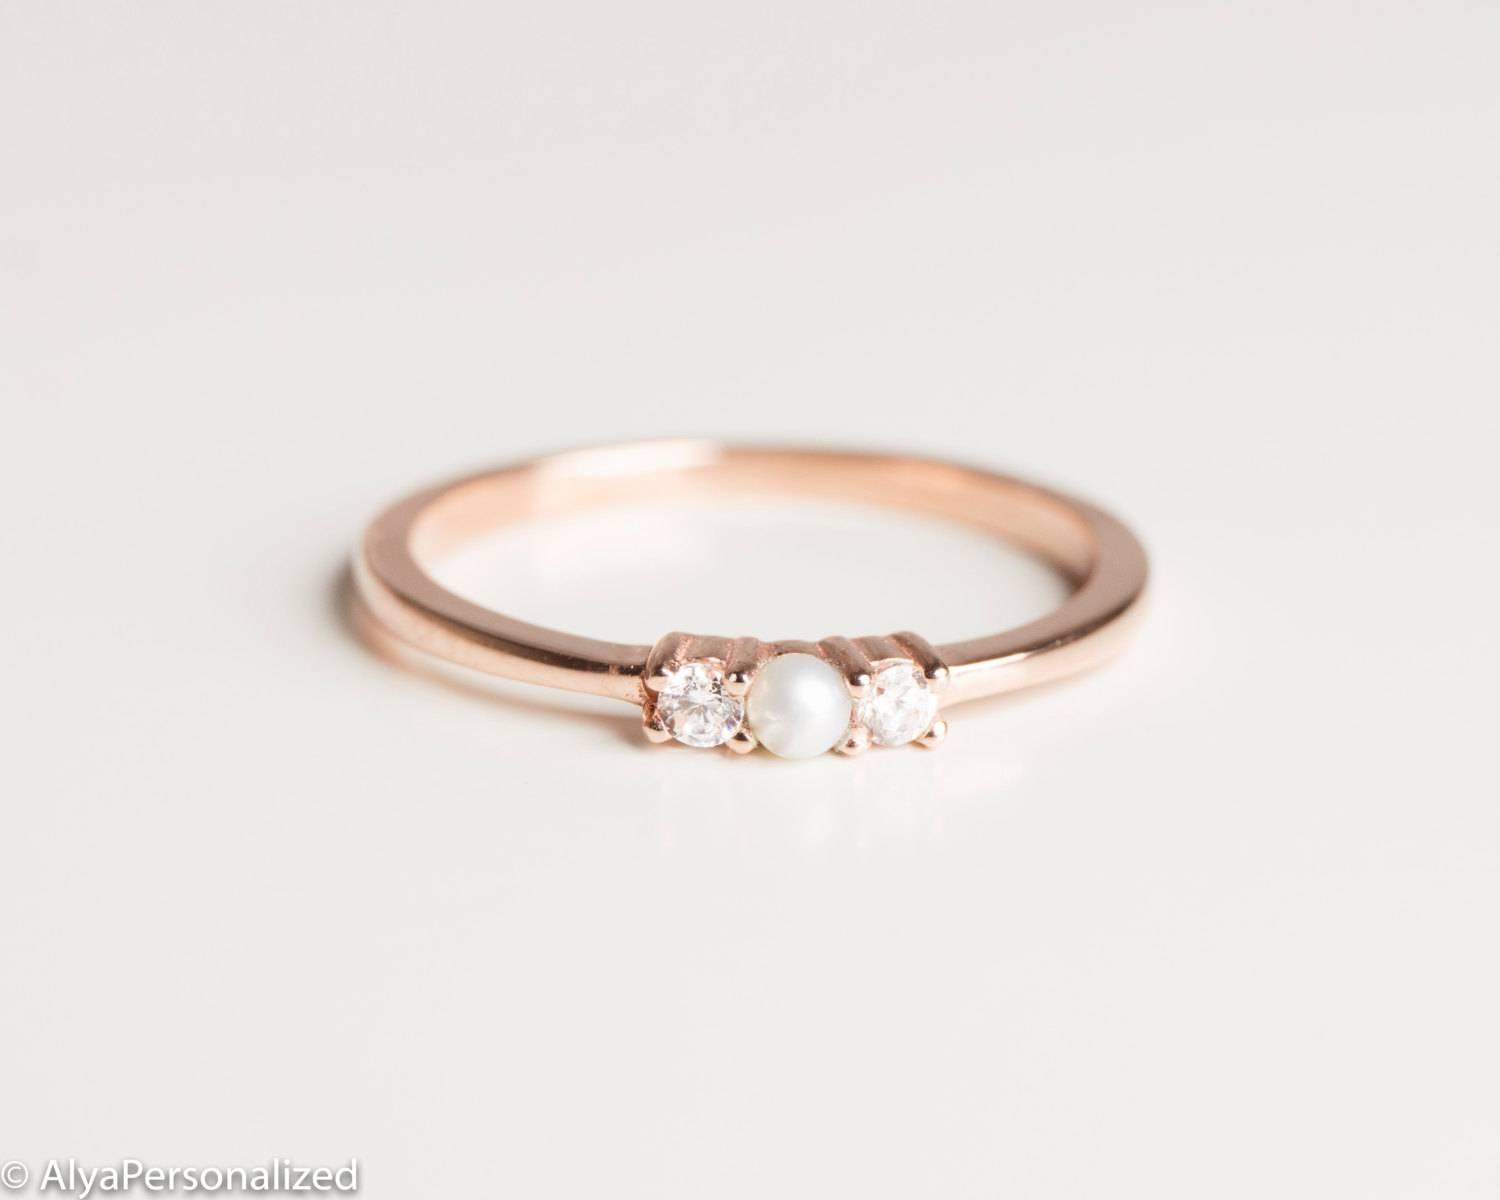 Anniversary Ring Simple Ring Band Thin Rose Gold Ring In Most Current Gold Anniversary Rings (View 7 of 25)